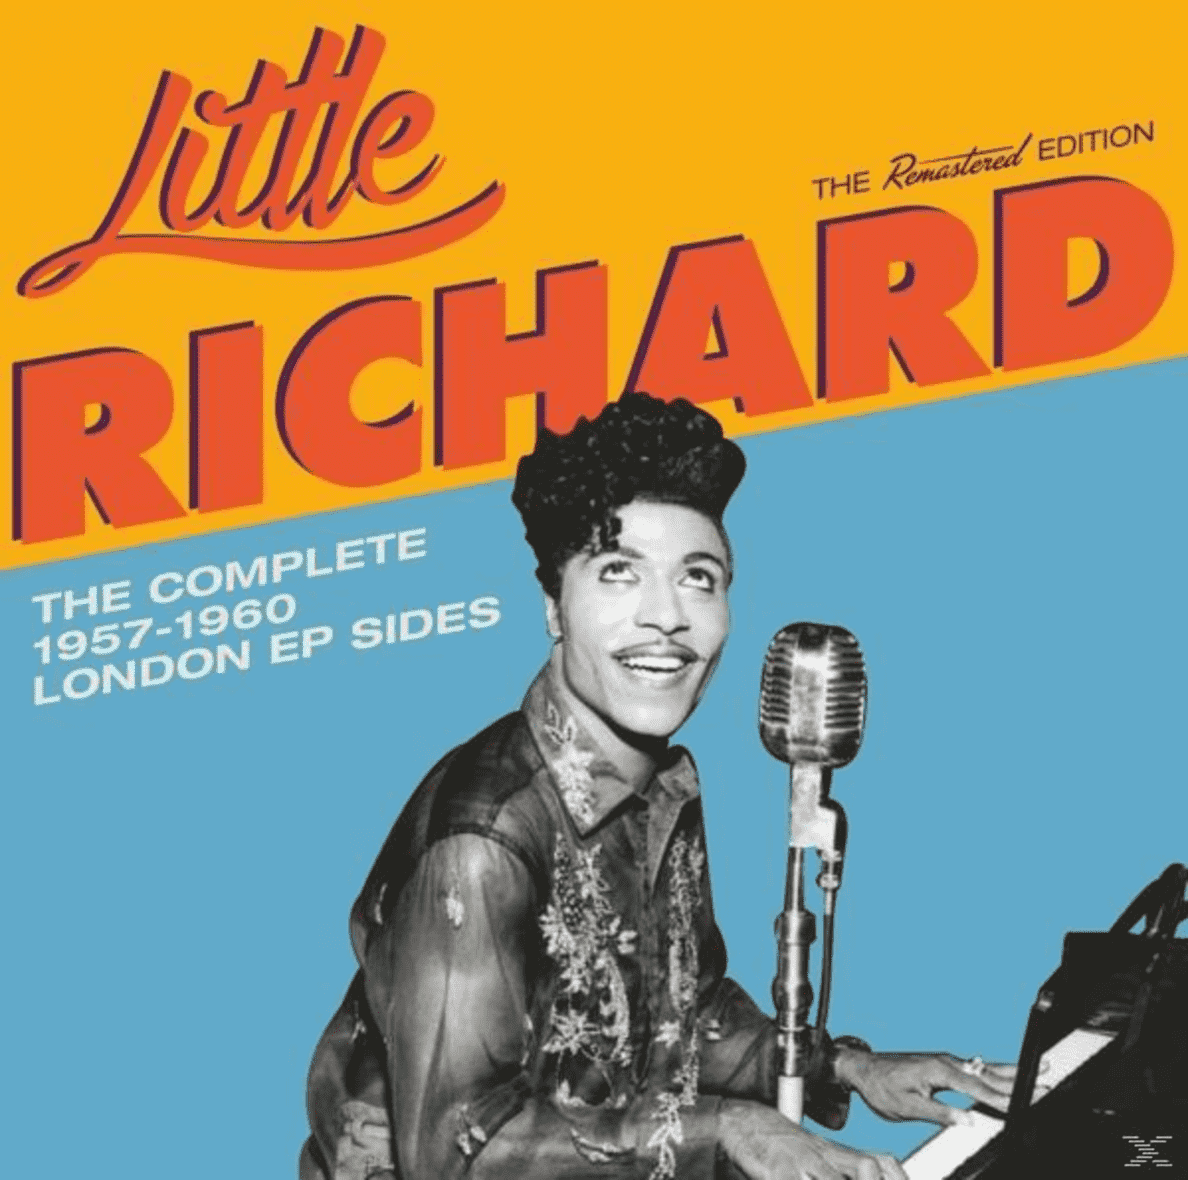 Little Richard - The Complete 1957-1960 London Ep Sides - (CD)